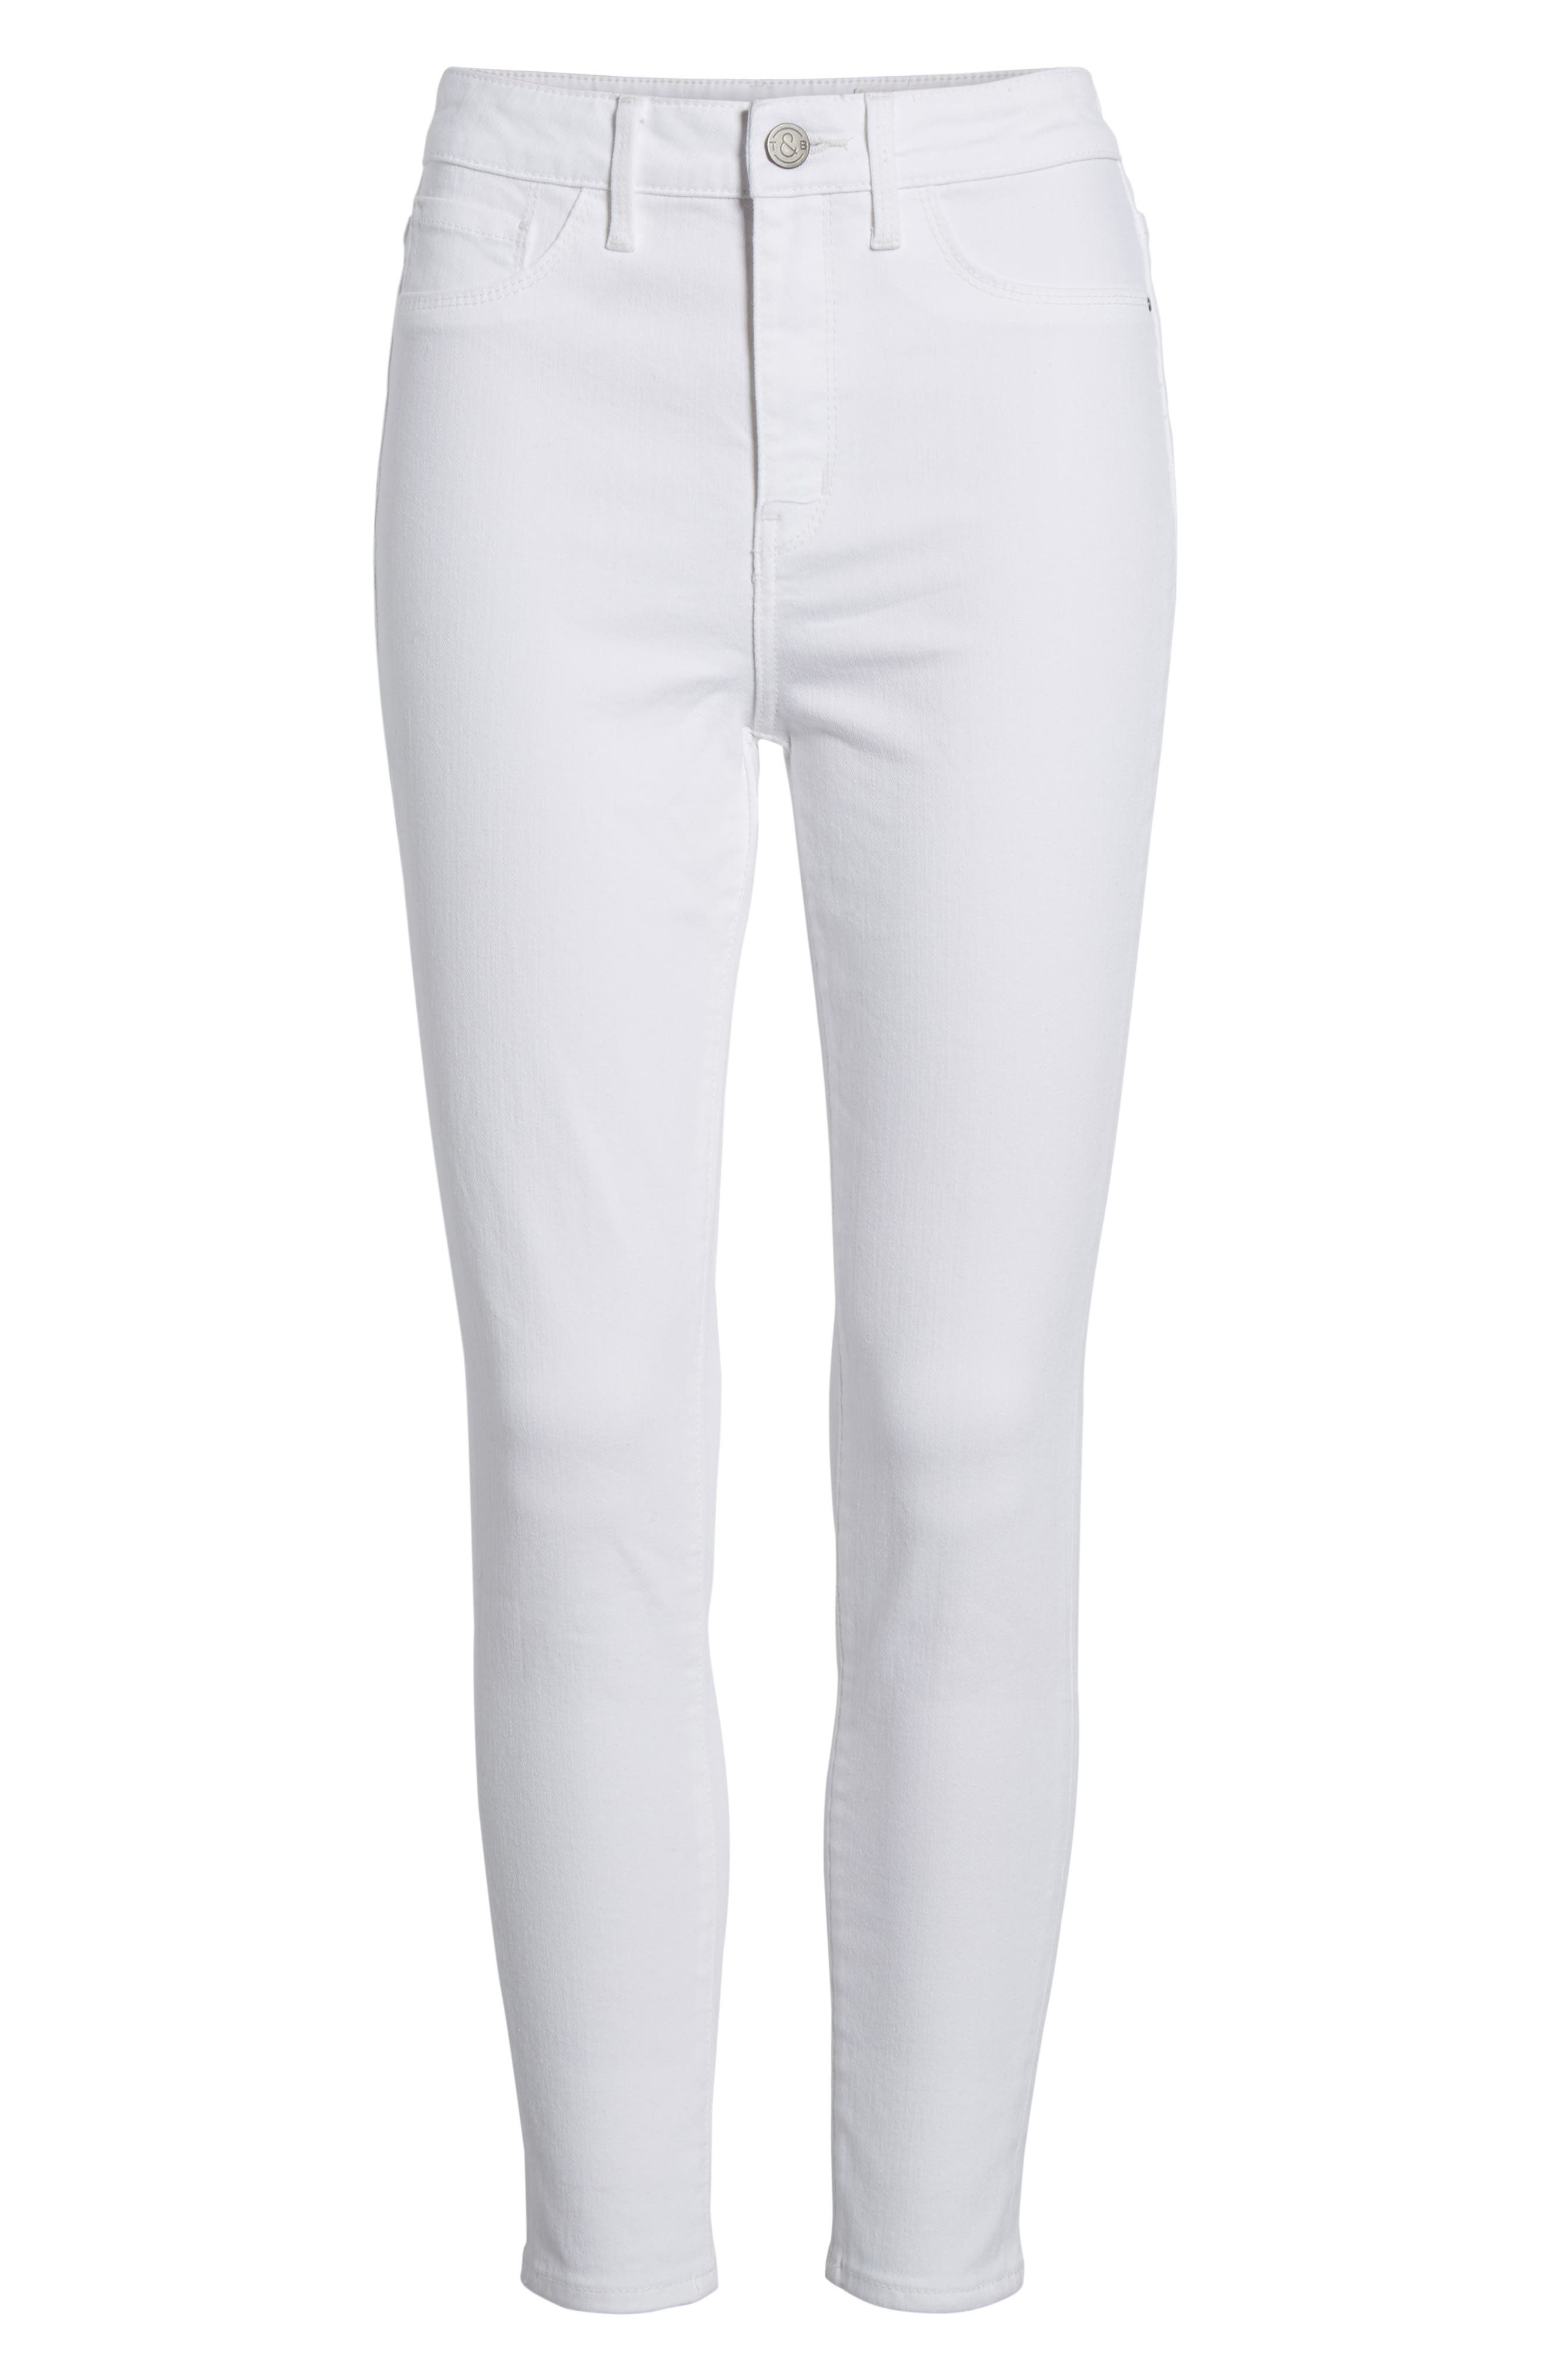 Charity High Waist Crop Skinny Jeans,                             Alternate thumbnail 7, color,                             White